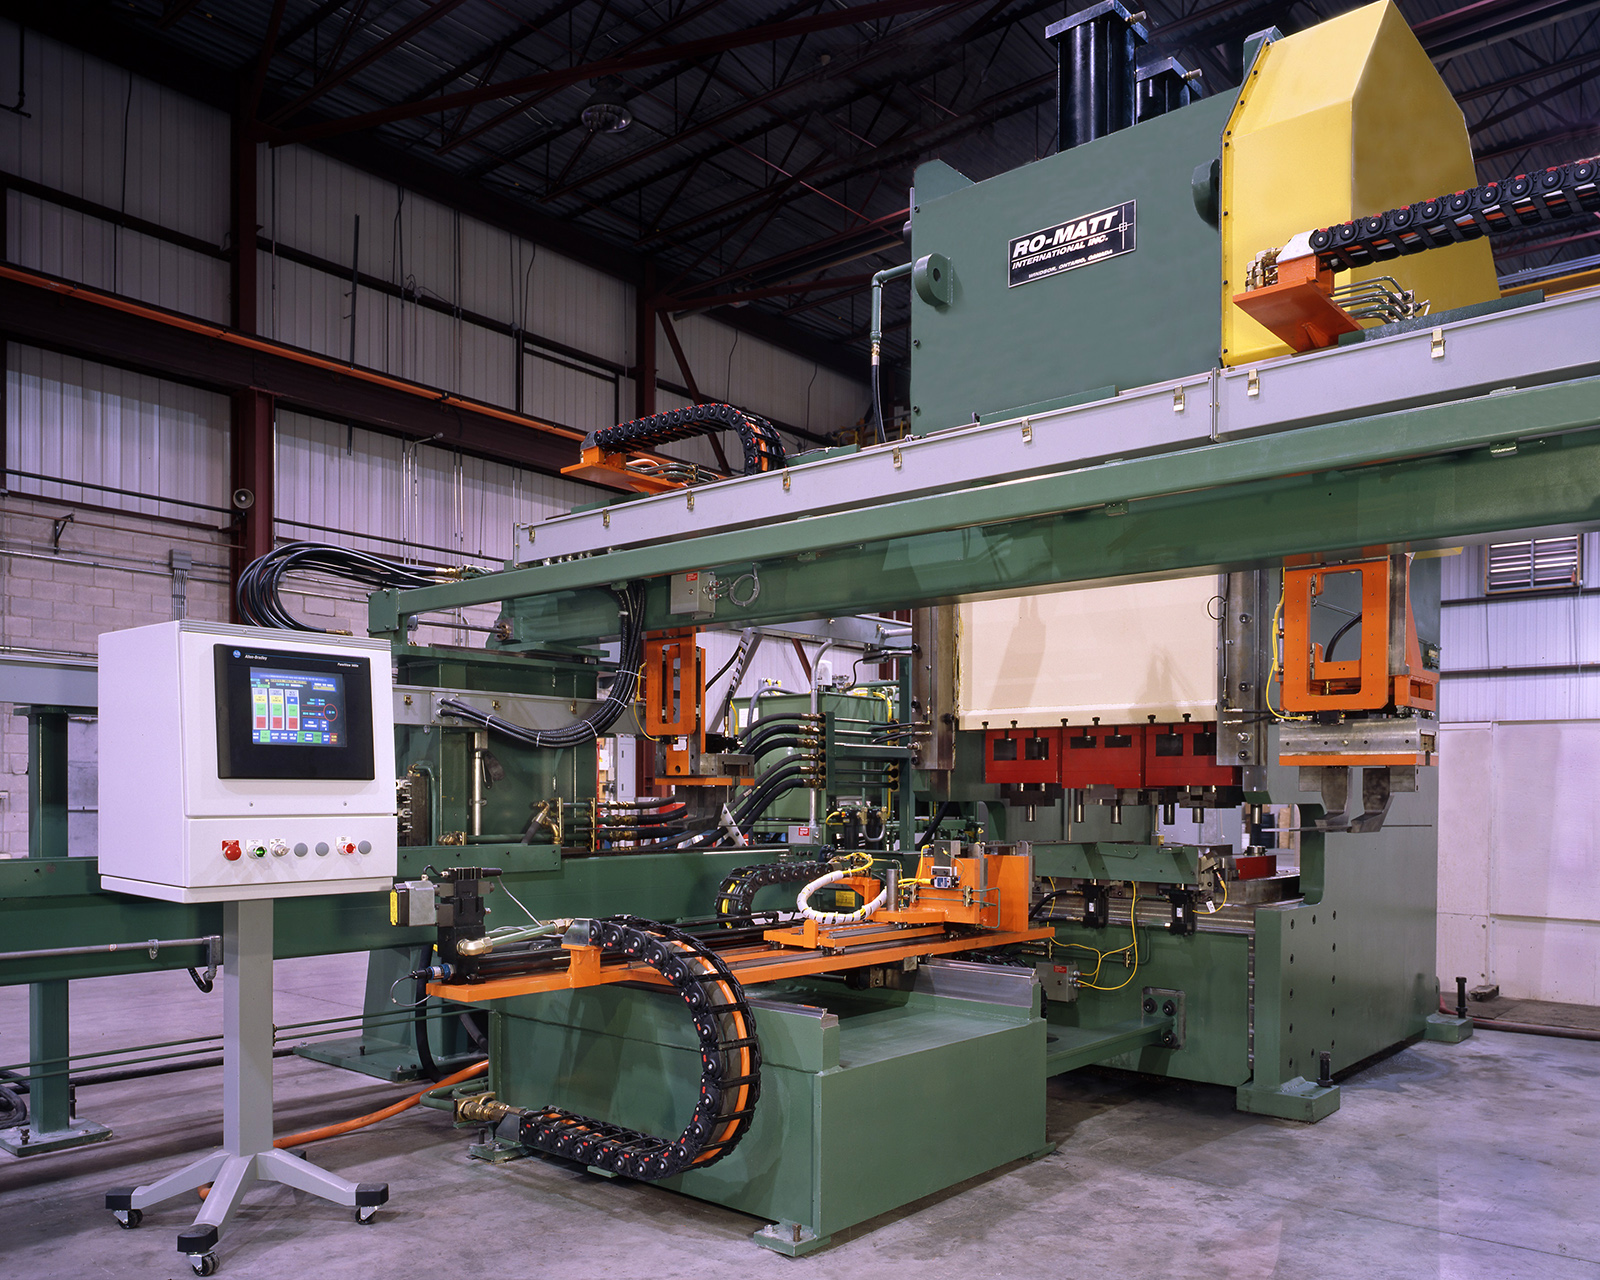 Mechanical Press, 2-Axis Servo Feeder and Gantry Pick and Place System